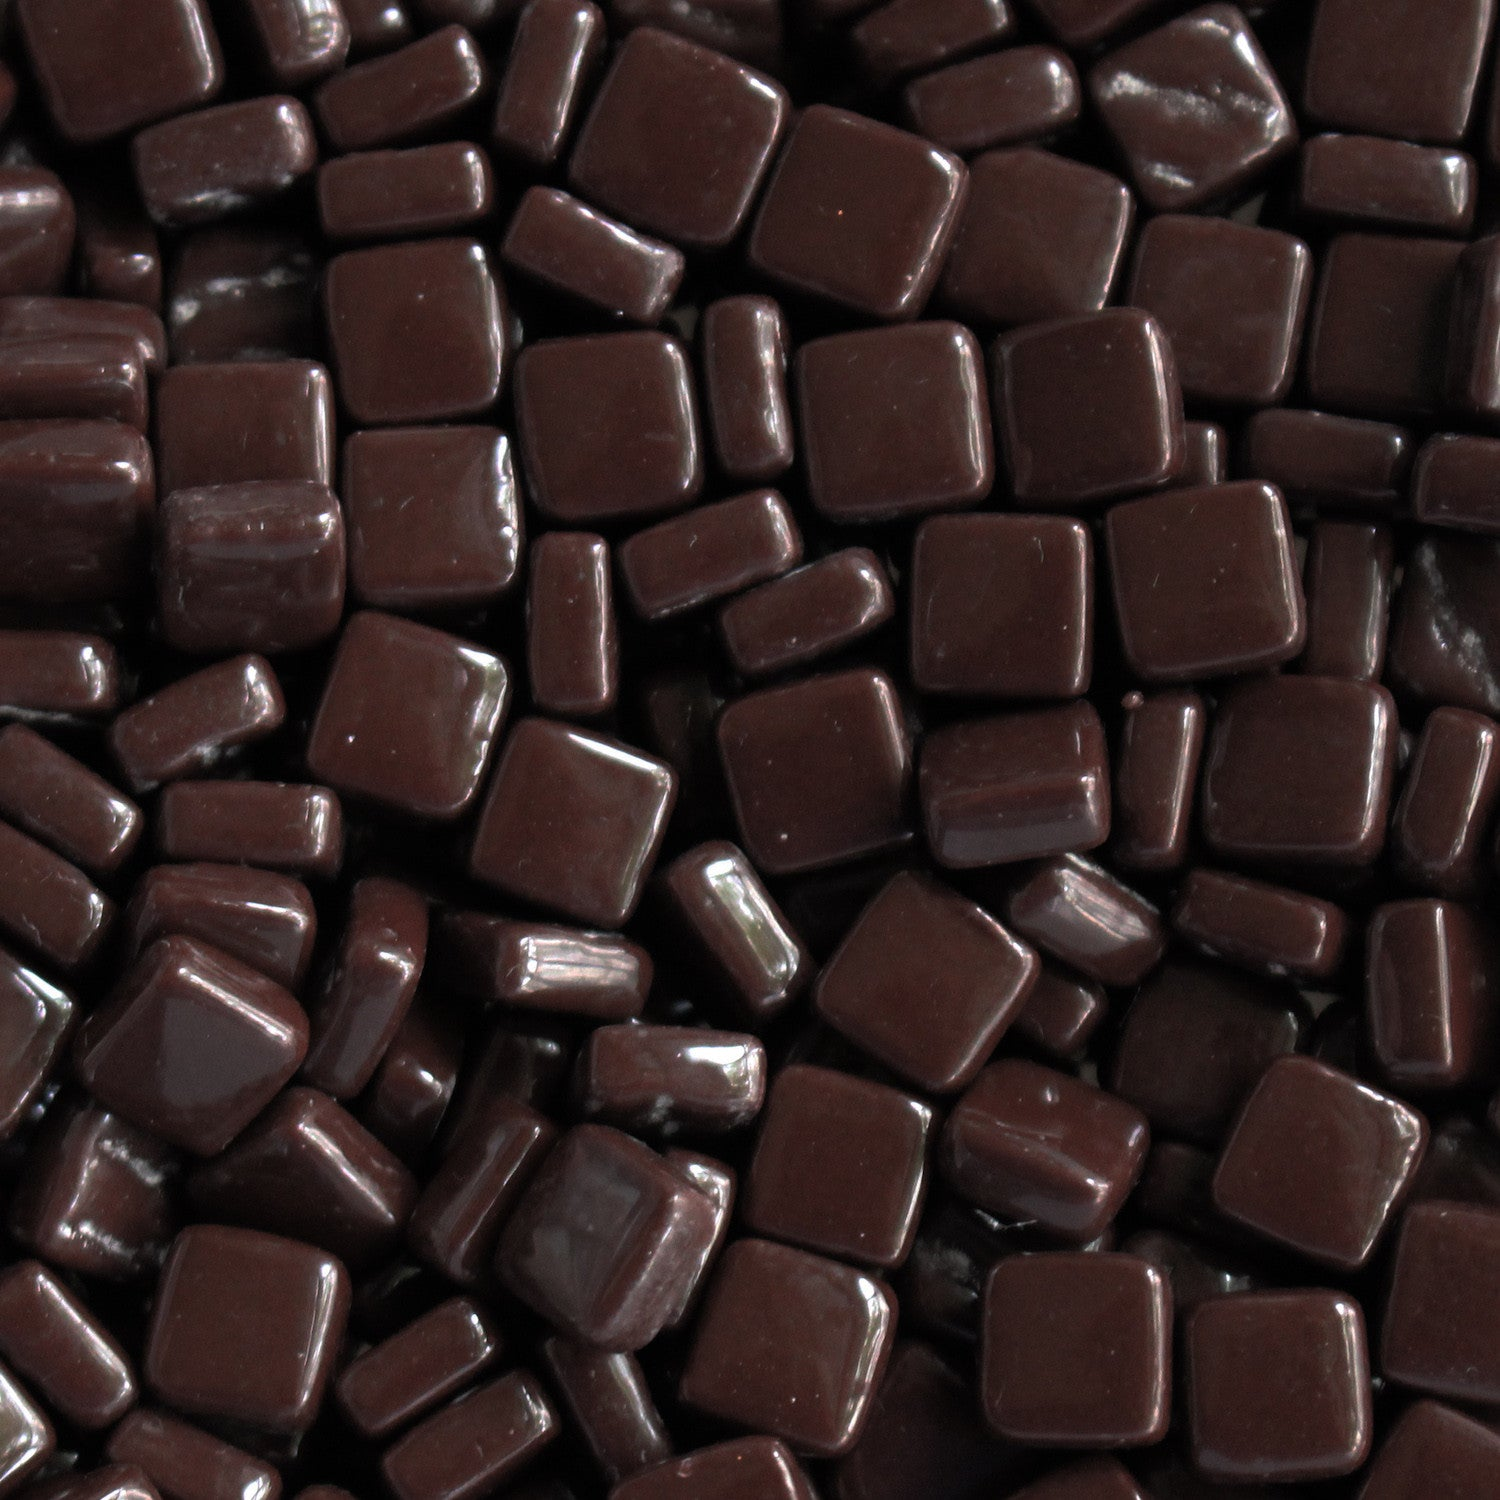 100-g Dark Chocolate, 8mm - Tans & Browns tile - Kismet Mosaic - mosaic supplies